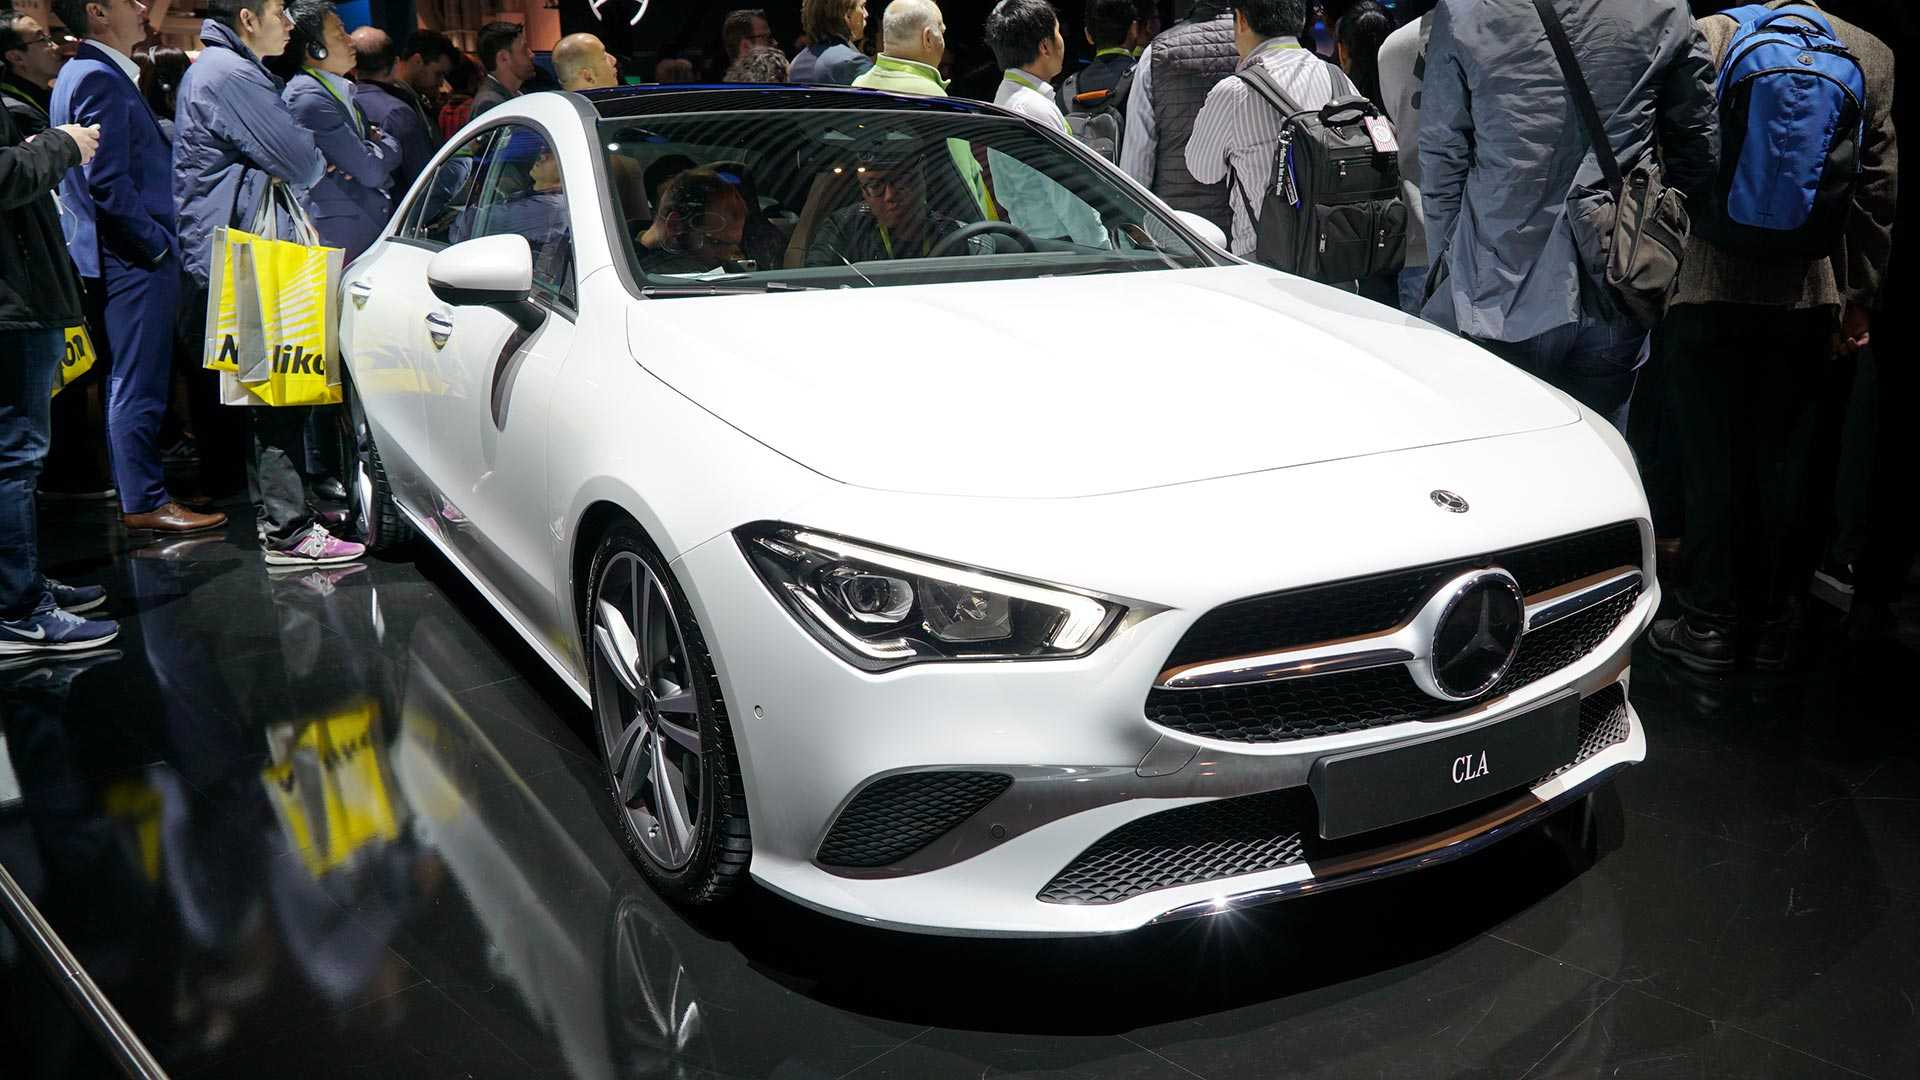 42 Great Mercedes Cla 2020 Exterior Date Specs and Review for Mercedes Cla 2020 Exterior Date